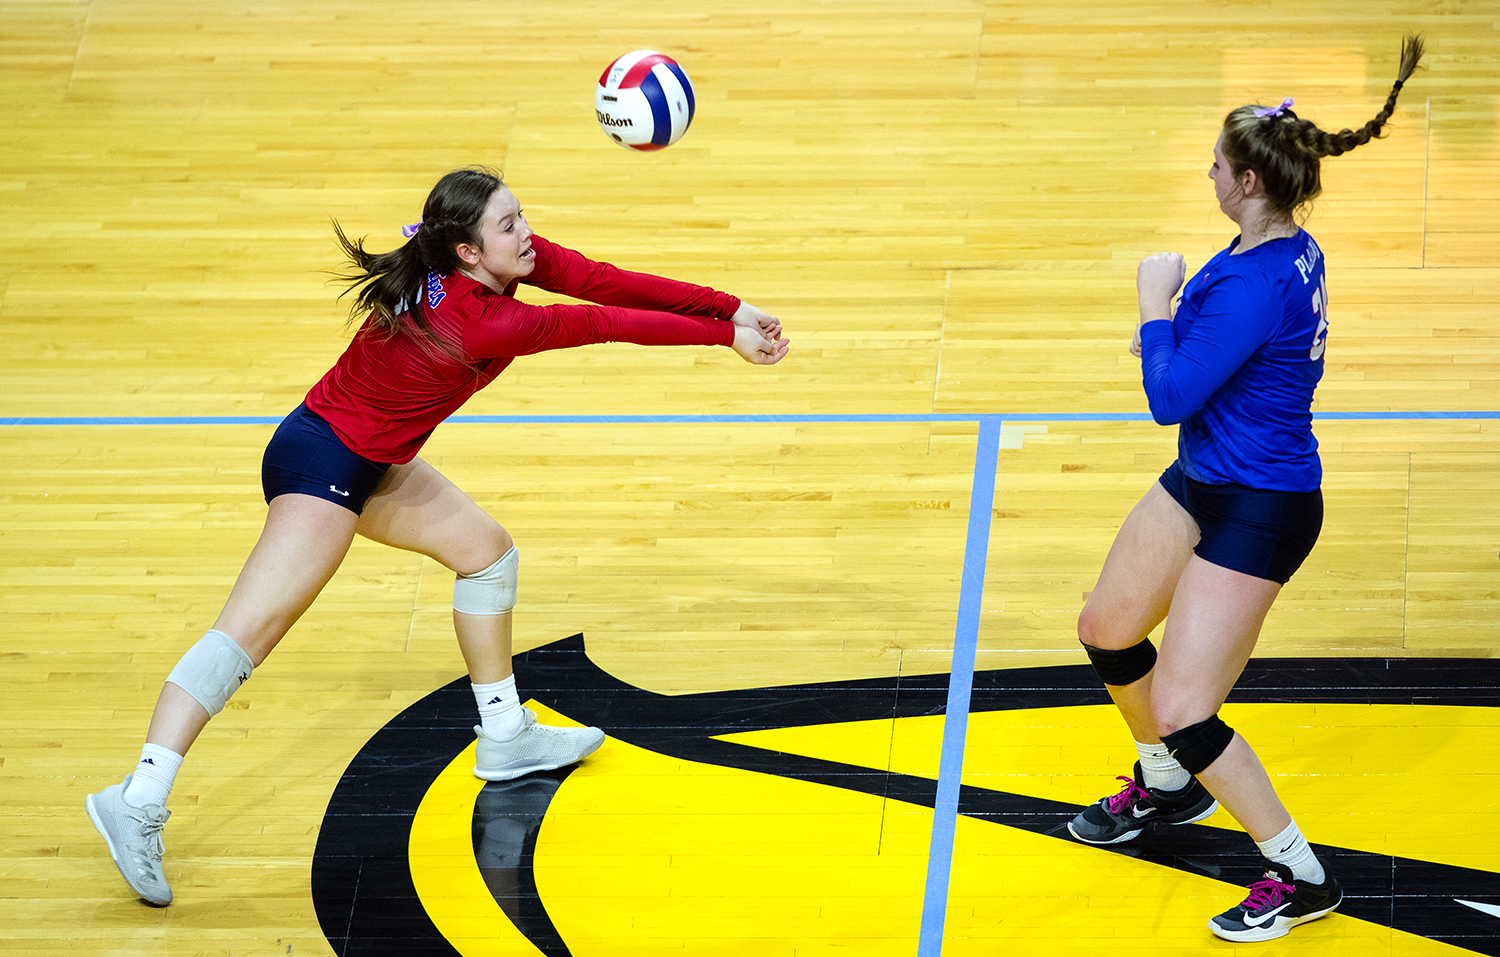 Pleasant Plains' MacKenzie Houser returns the ball to Galena during the IHSA Class 2A Volleyball championship at Redbird Arena in Normal Saturday, Nov. 10, 2018. [Ted Schurter/The State Journal-Register]